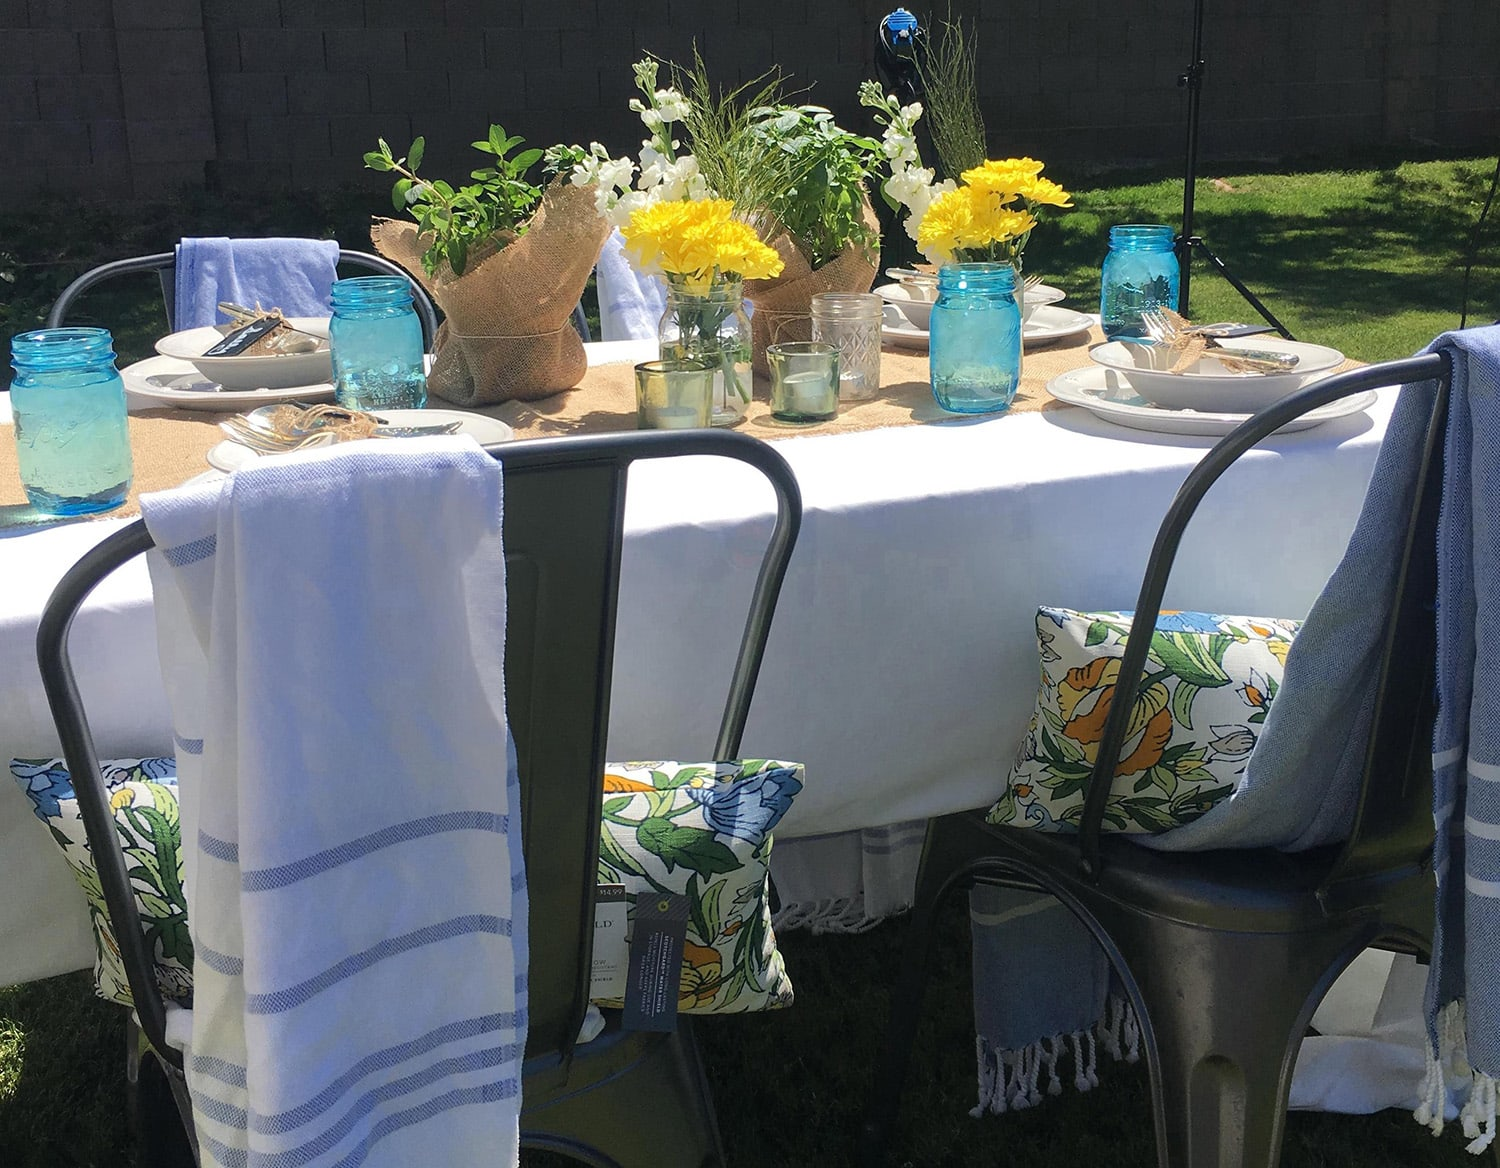 <p>backyard party table setup</p>